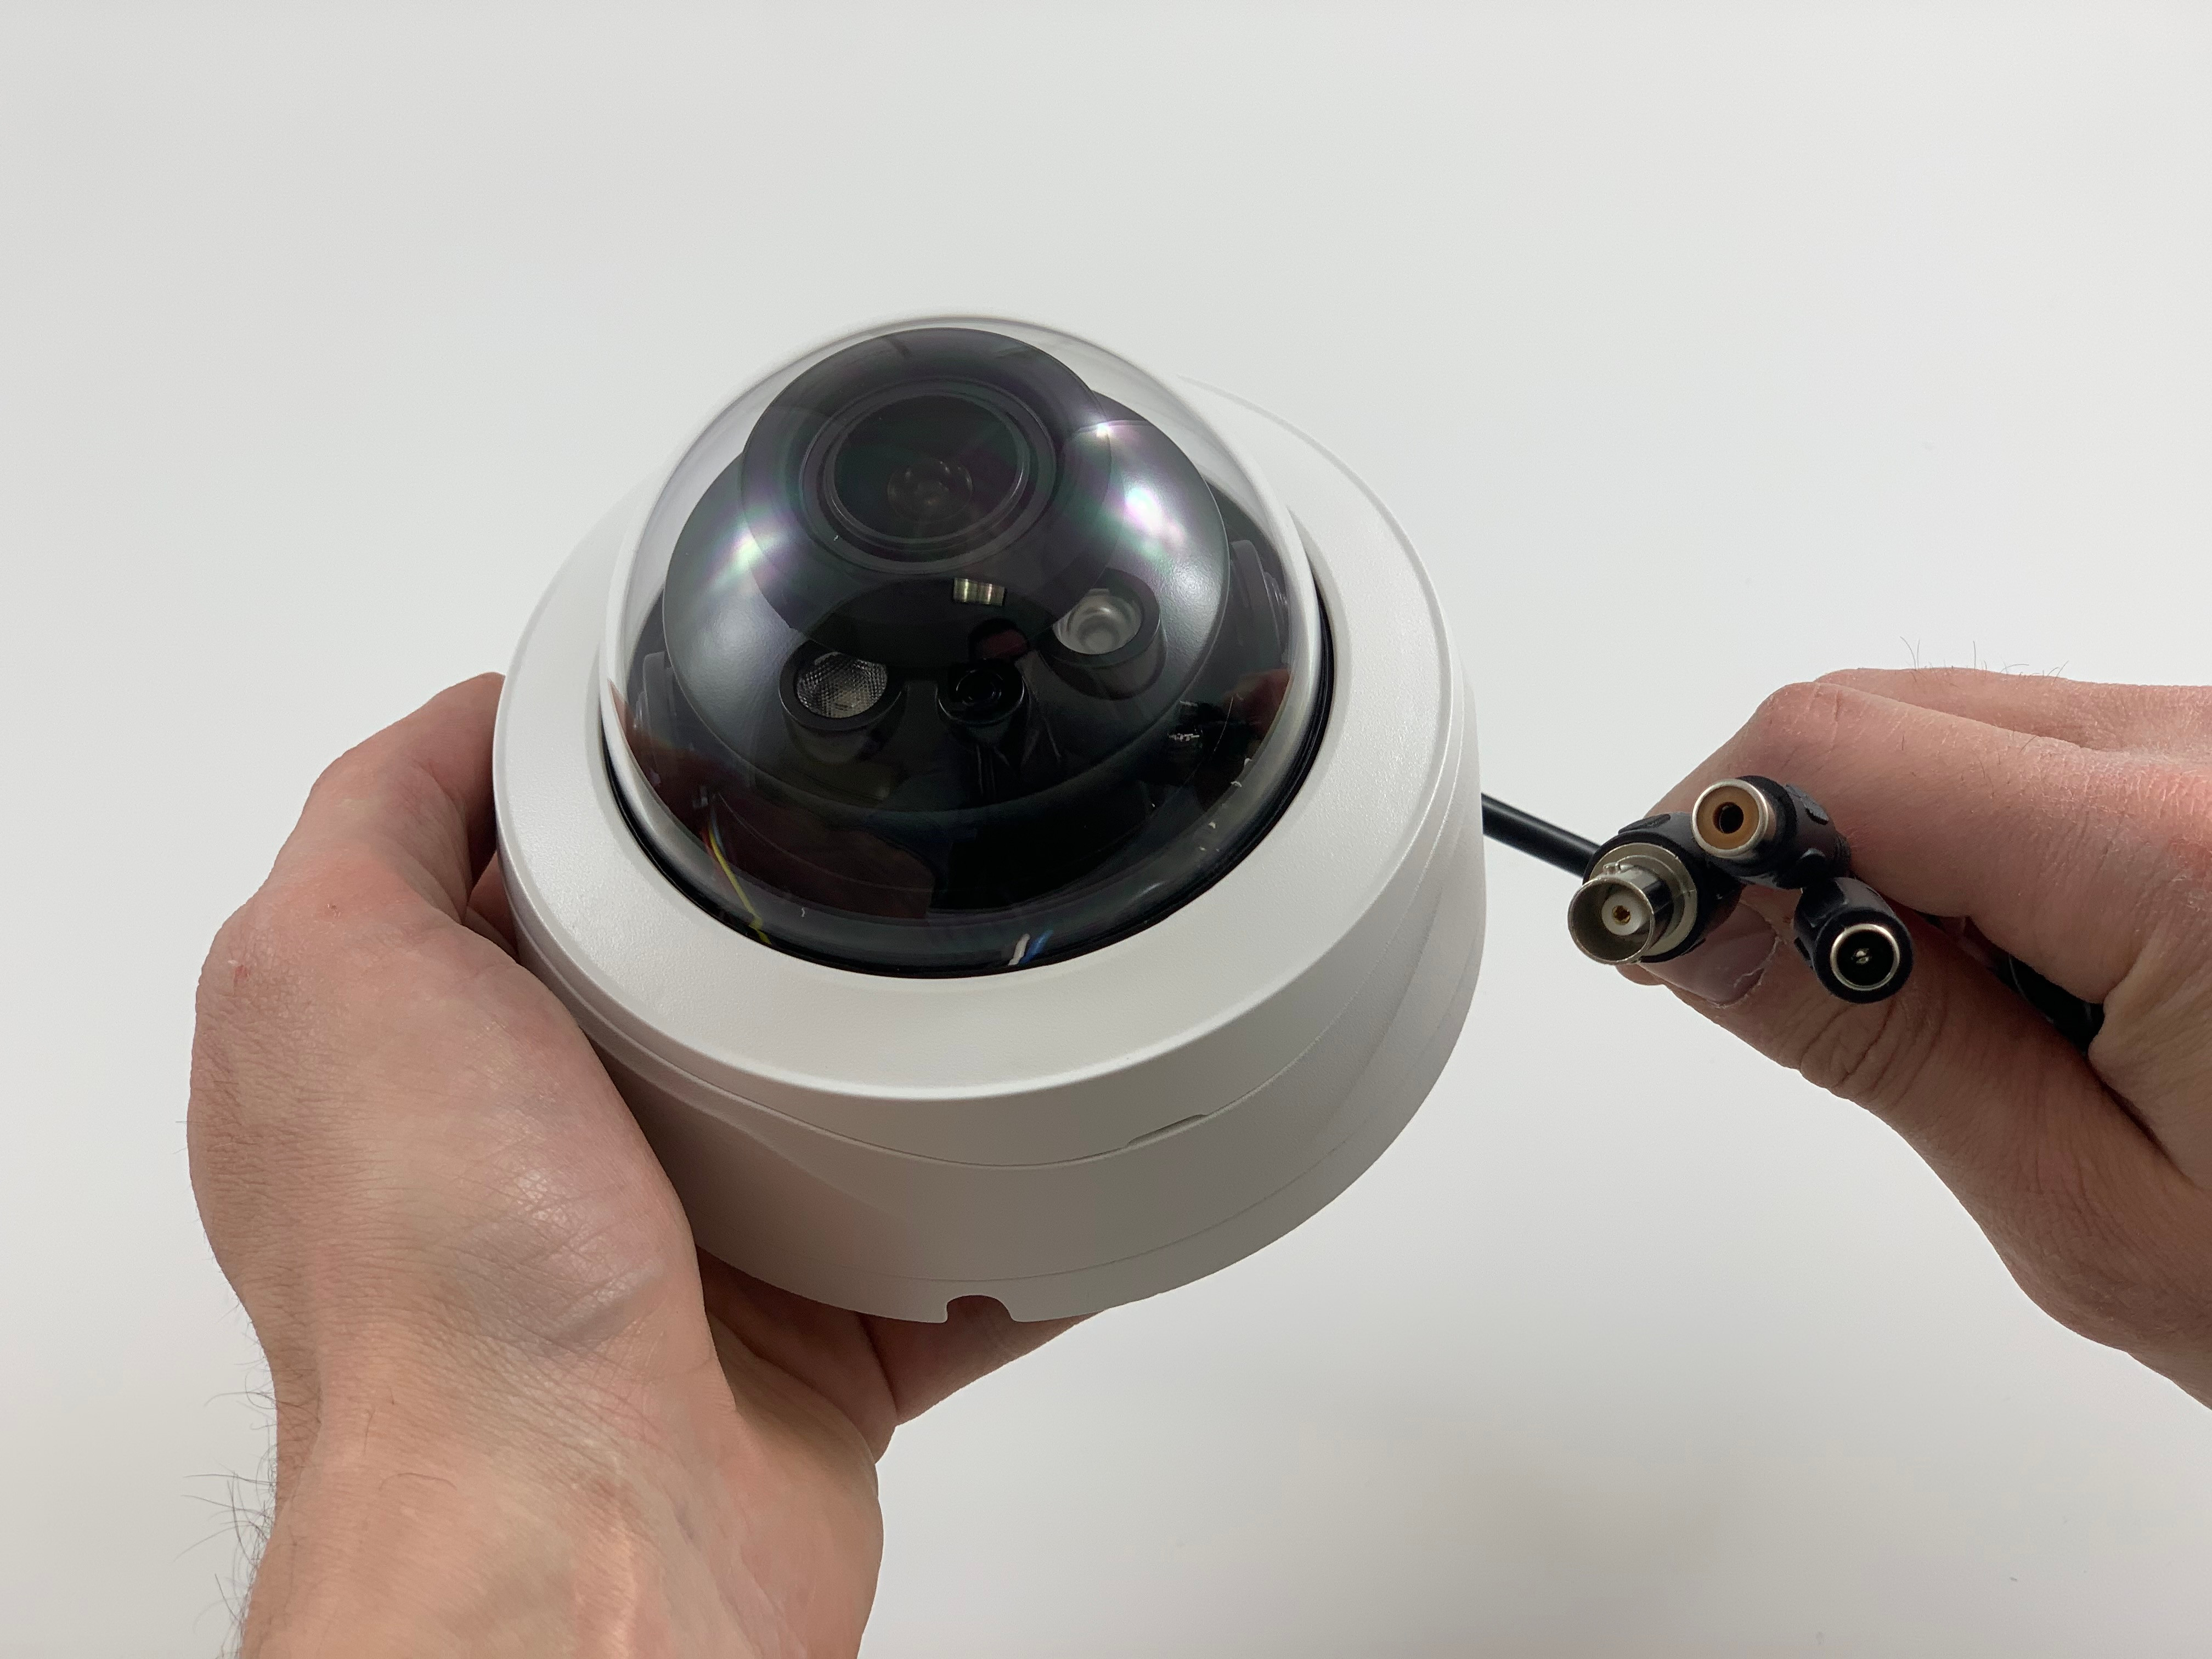 HD Security Camera - 5 Megapixel Dome with Adjustable Zoom